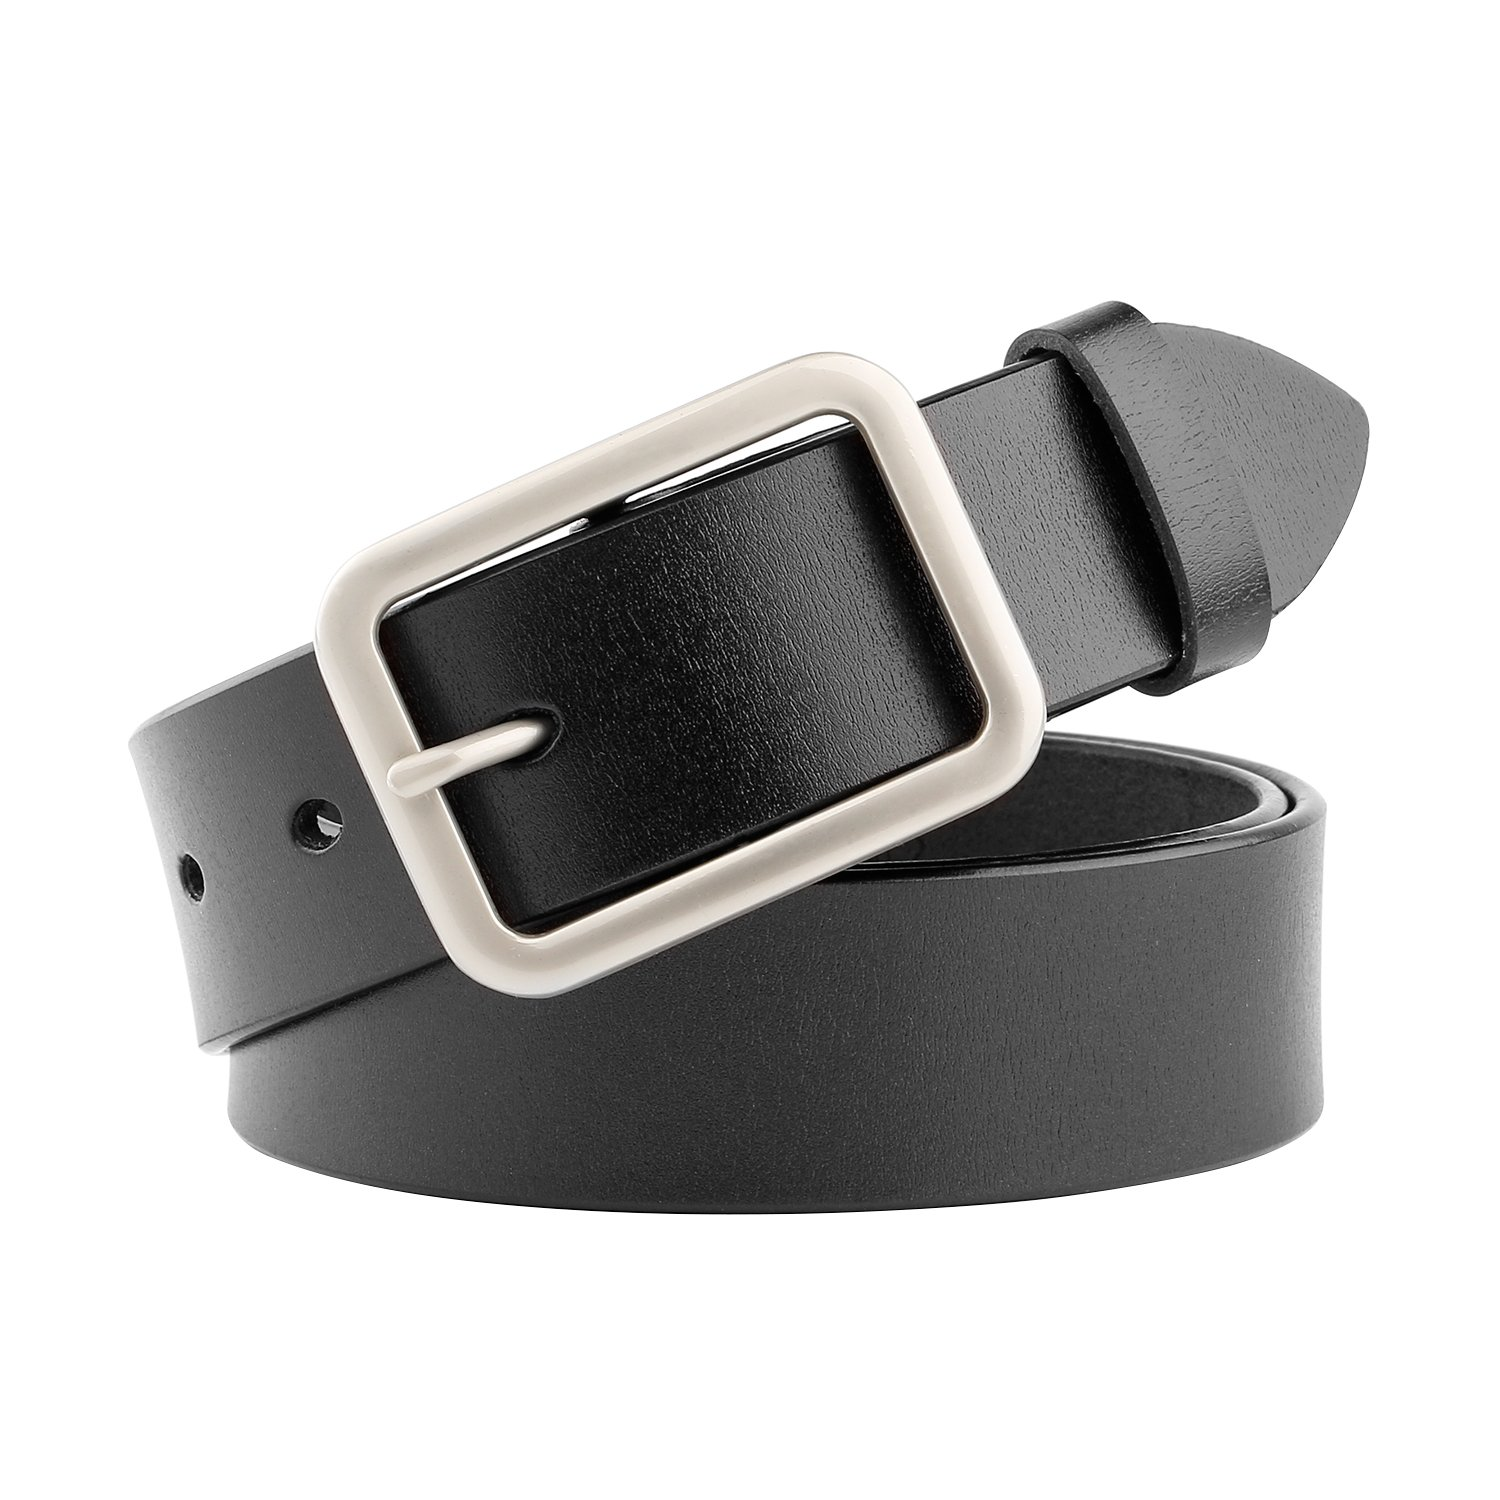 WHIPPY New Arrival Jeans Belt for Women Genuine Leather Belt with Pin Buckle,  Black,